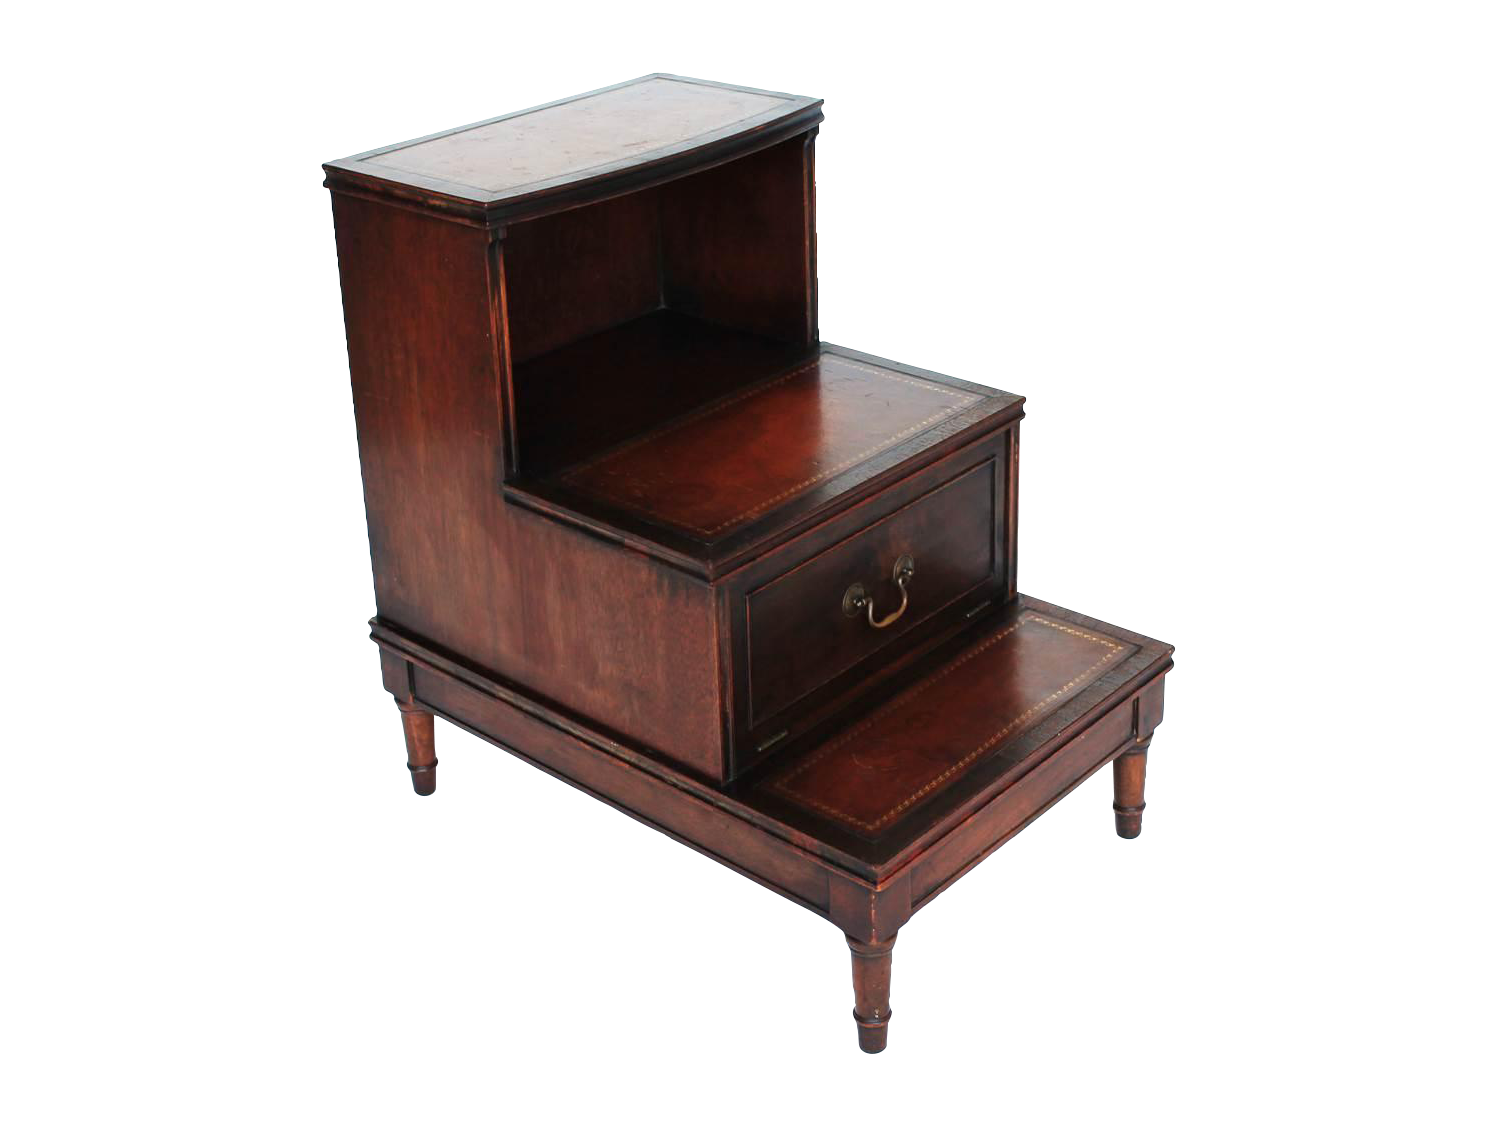 Astonishing Library Step Stool Or Side Table On Chairish Com I Dream Ibusinesslaw Wood Chair Design Ideas Ibusinesslaworg